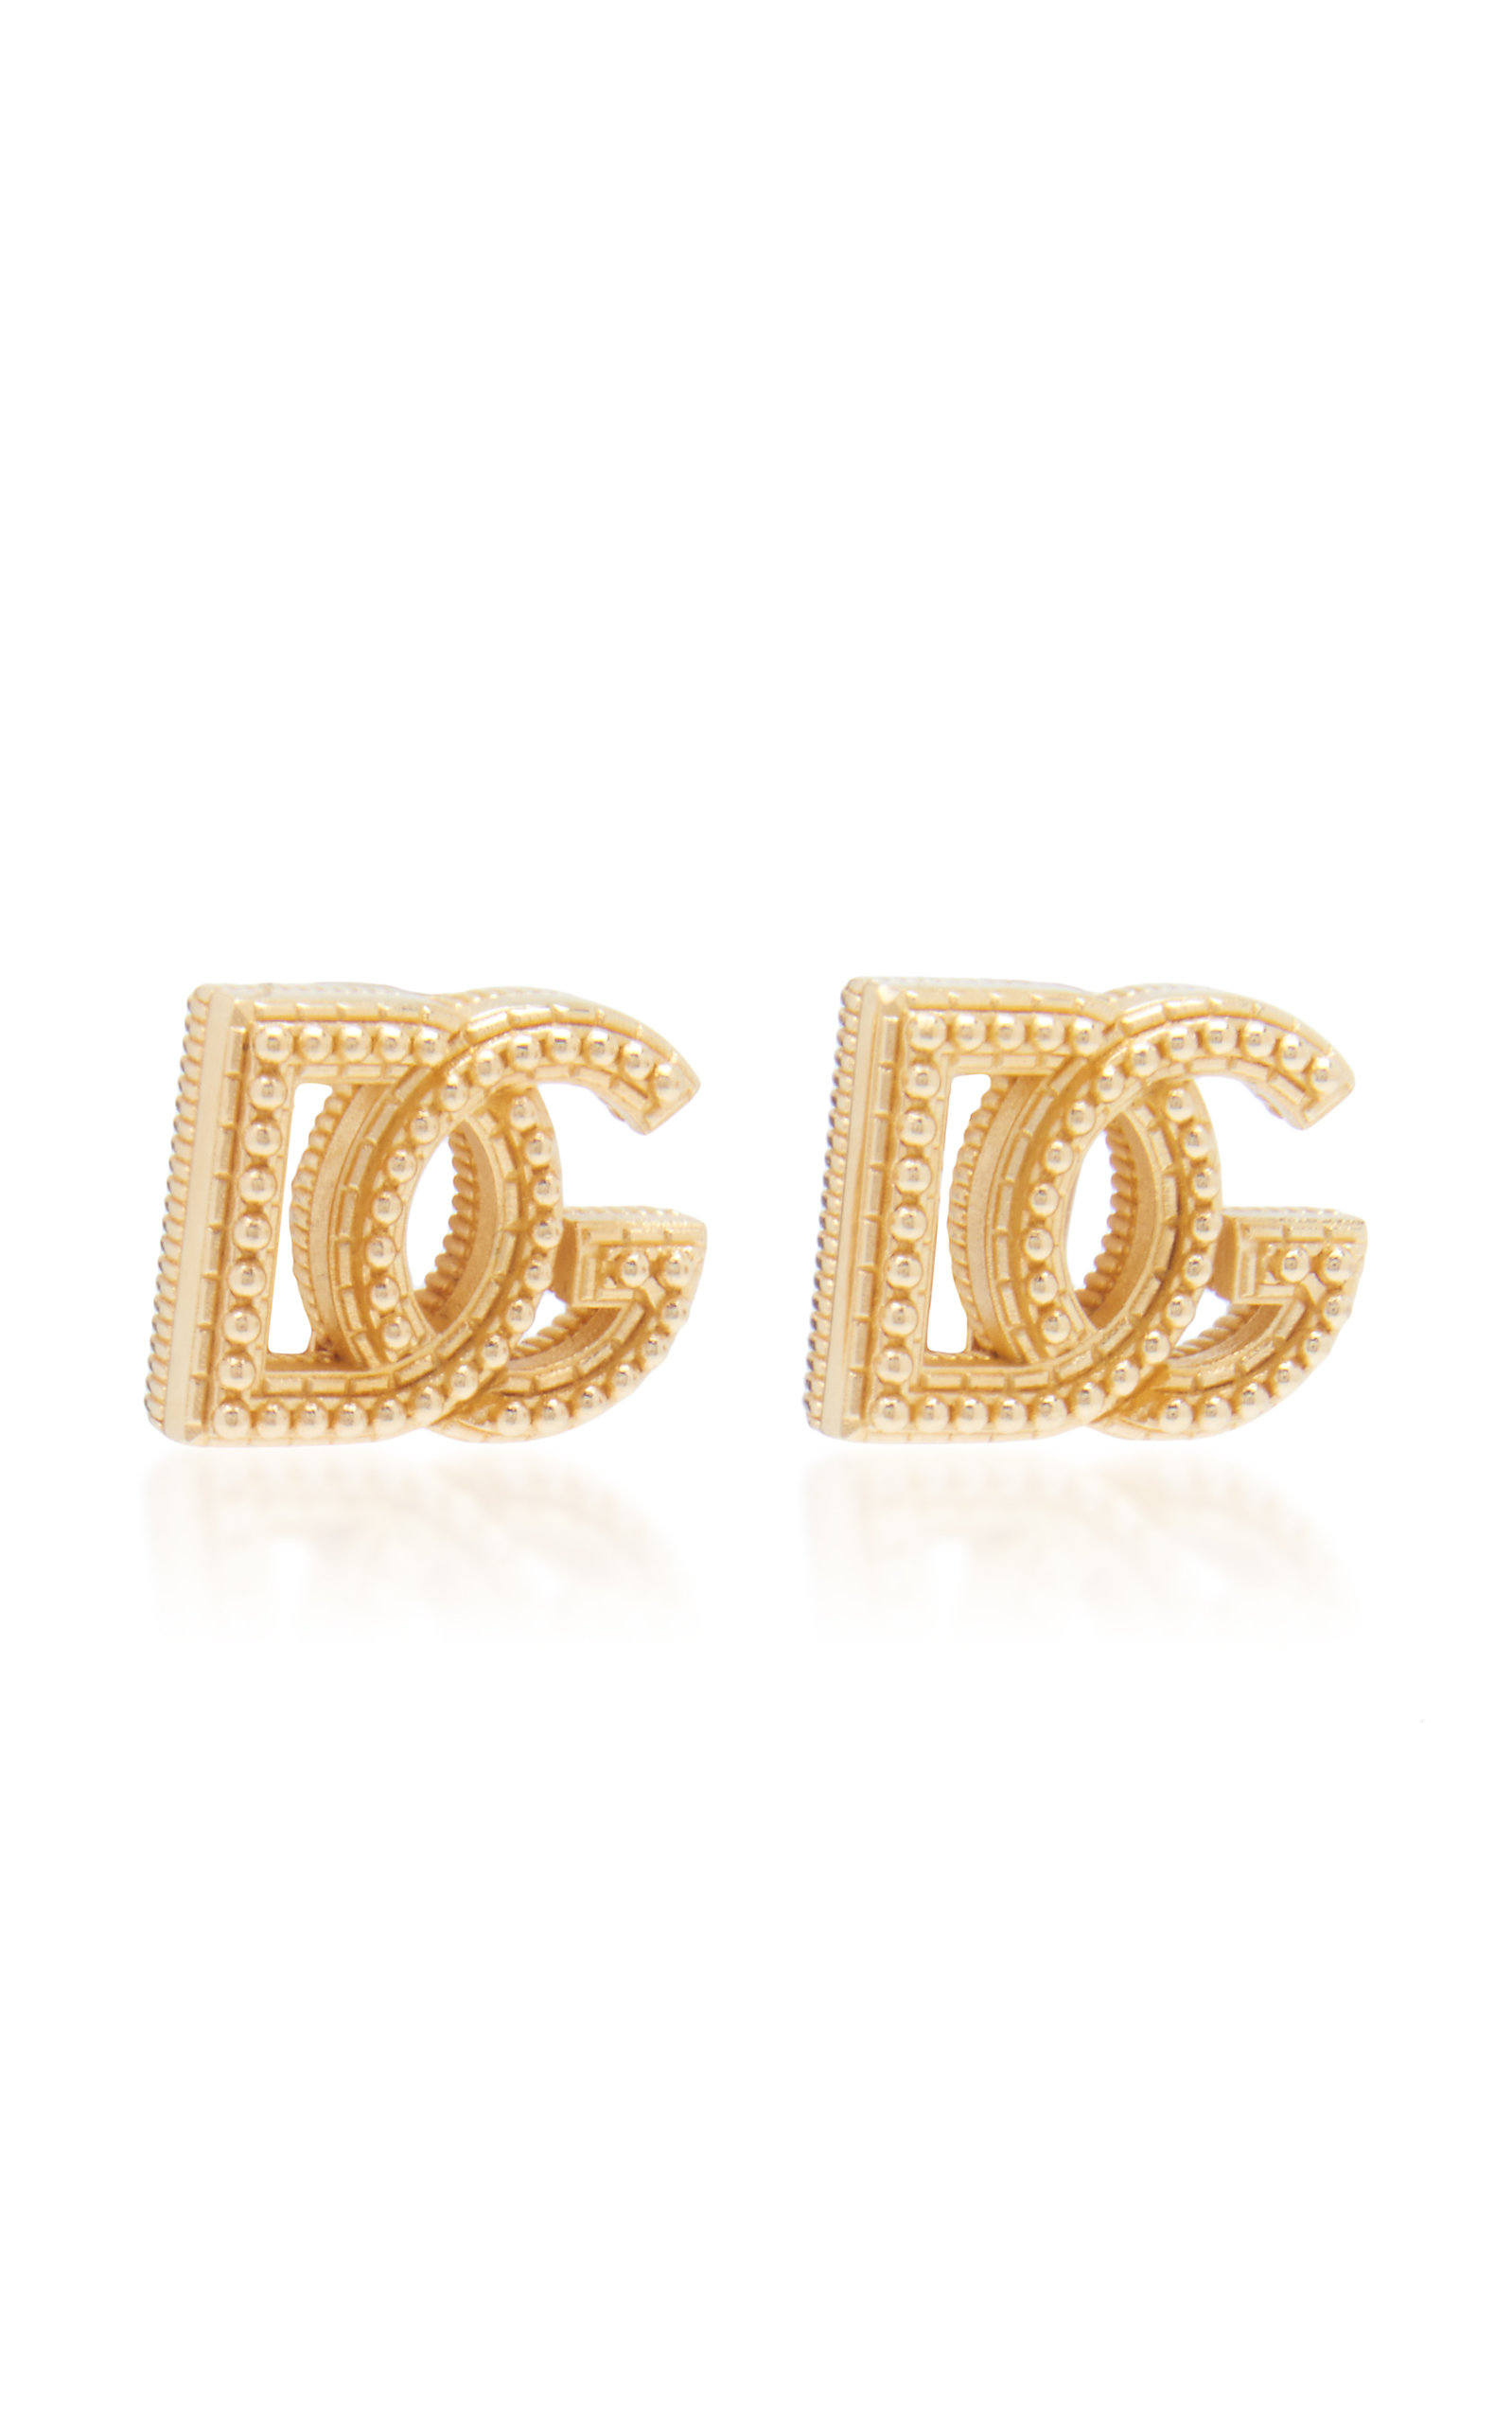 Dolce & Gabbana COUNTRY LOGO GOLD-TONE BRASS CLIP-ON EARRINGS